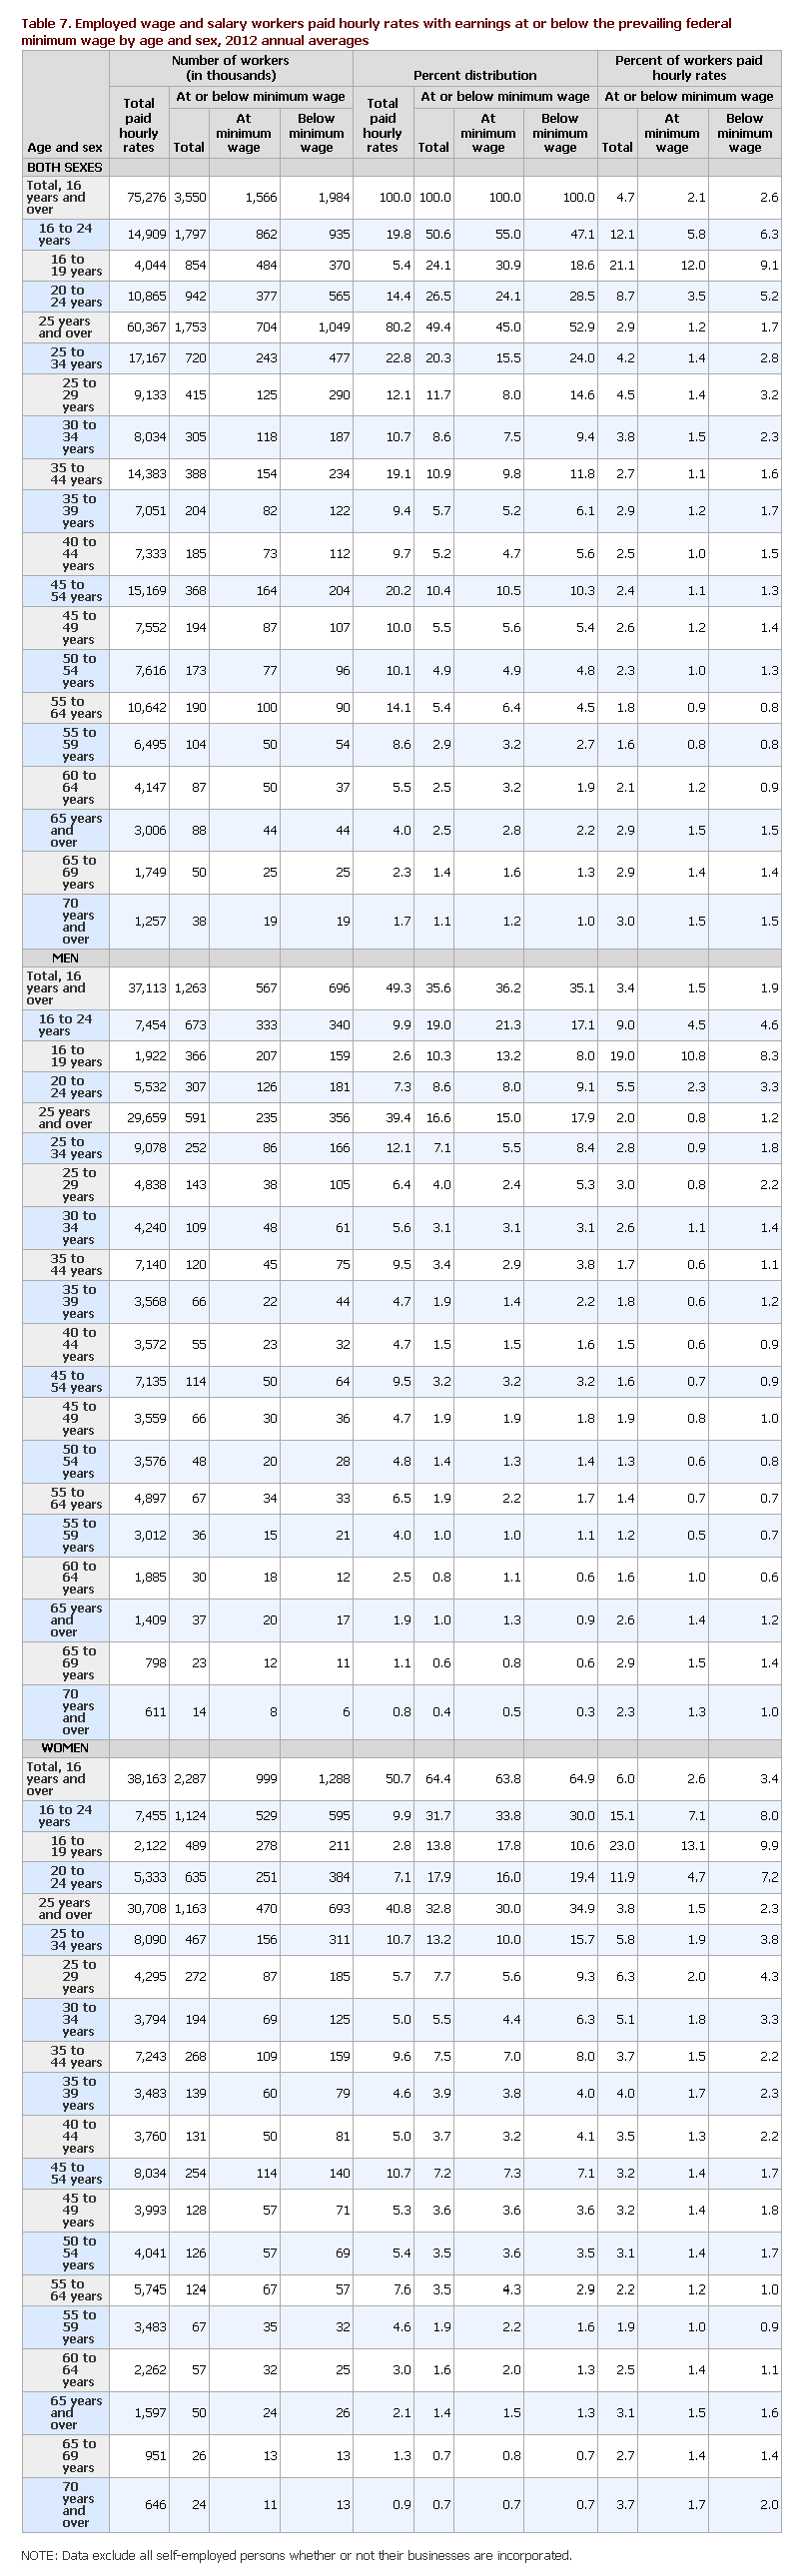 2013 Census Table 7